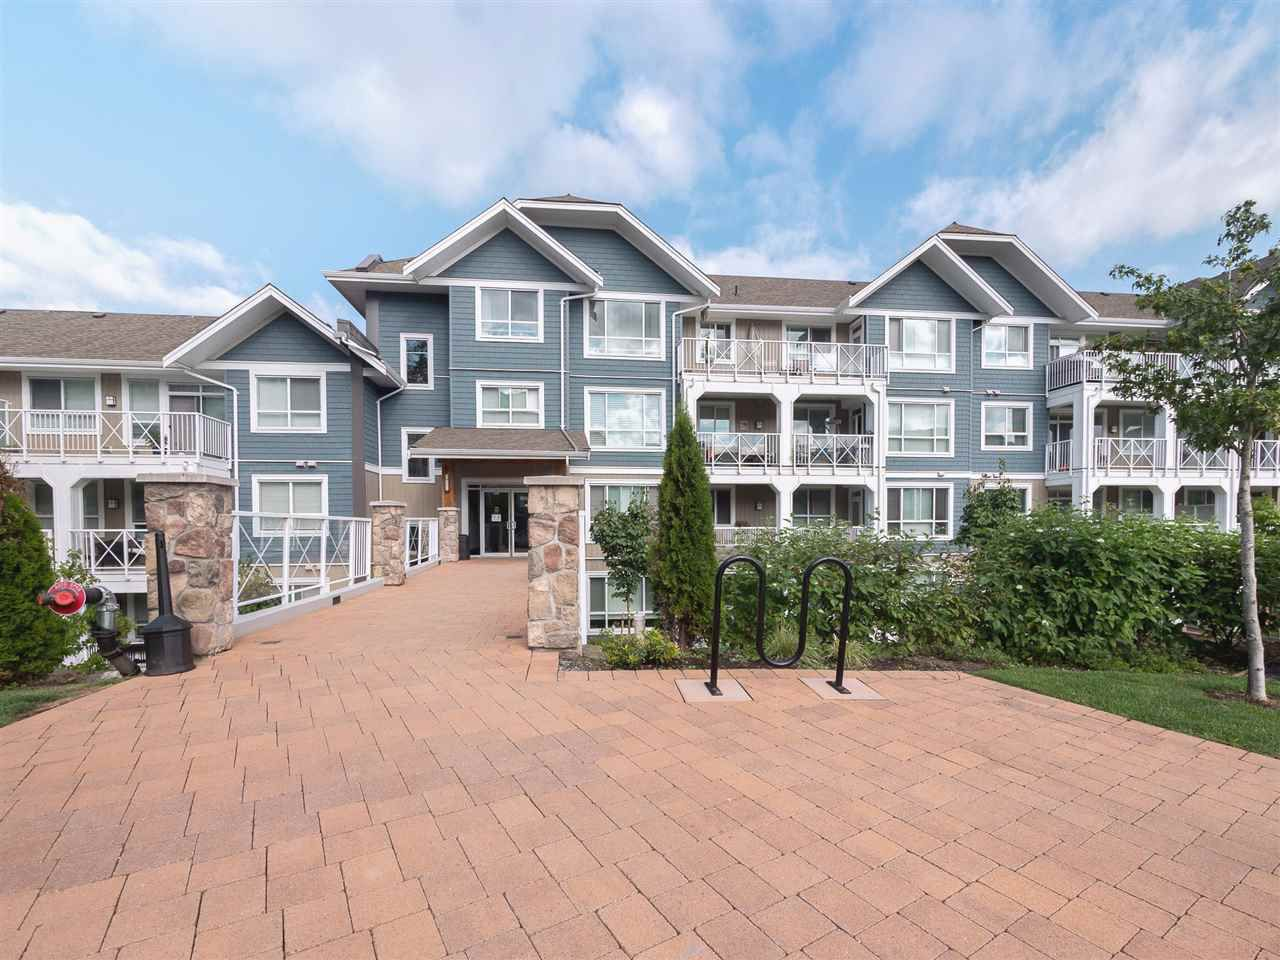 """Main Photo: 504 16380 64TH Avenue in Surrey: Cloverdale BC Condo for sale in """"THE RIDGE AT BOSE FARMS"""" (Cloverdale)  : MLS®# R2346721"""